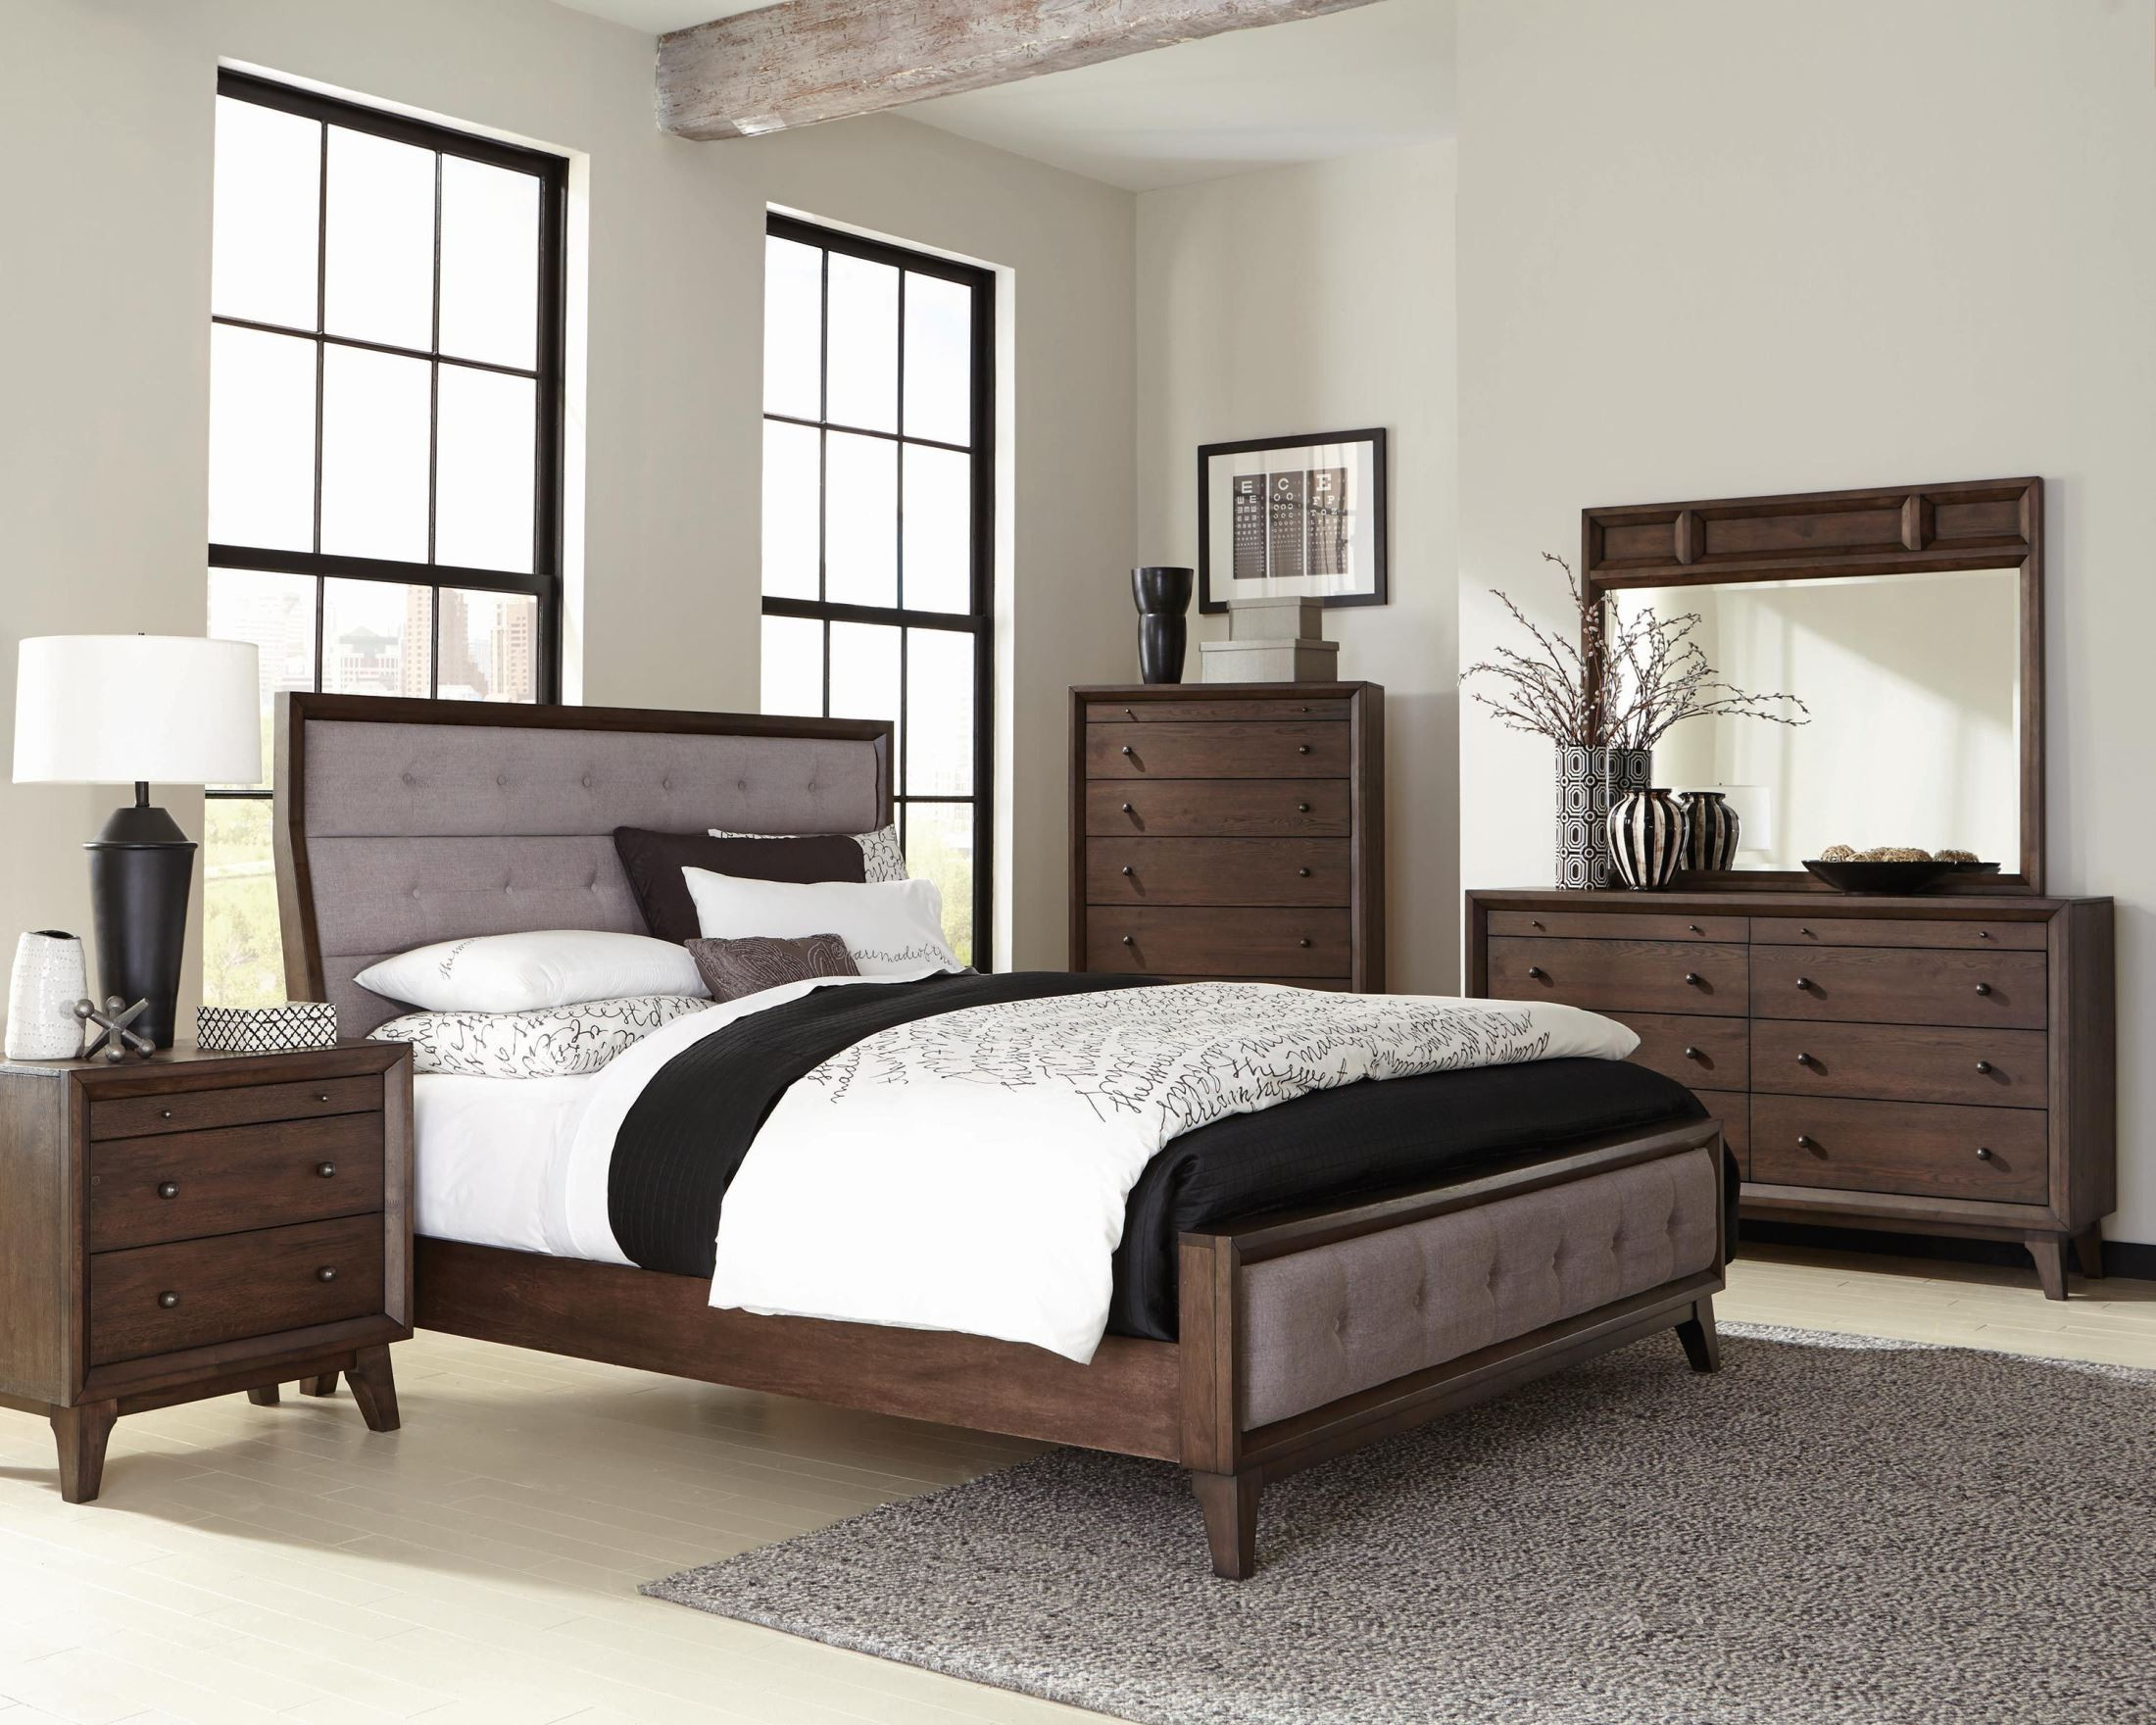 Bingham Brown Oak Panel Bedroom Set from Coaster